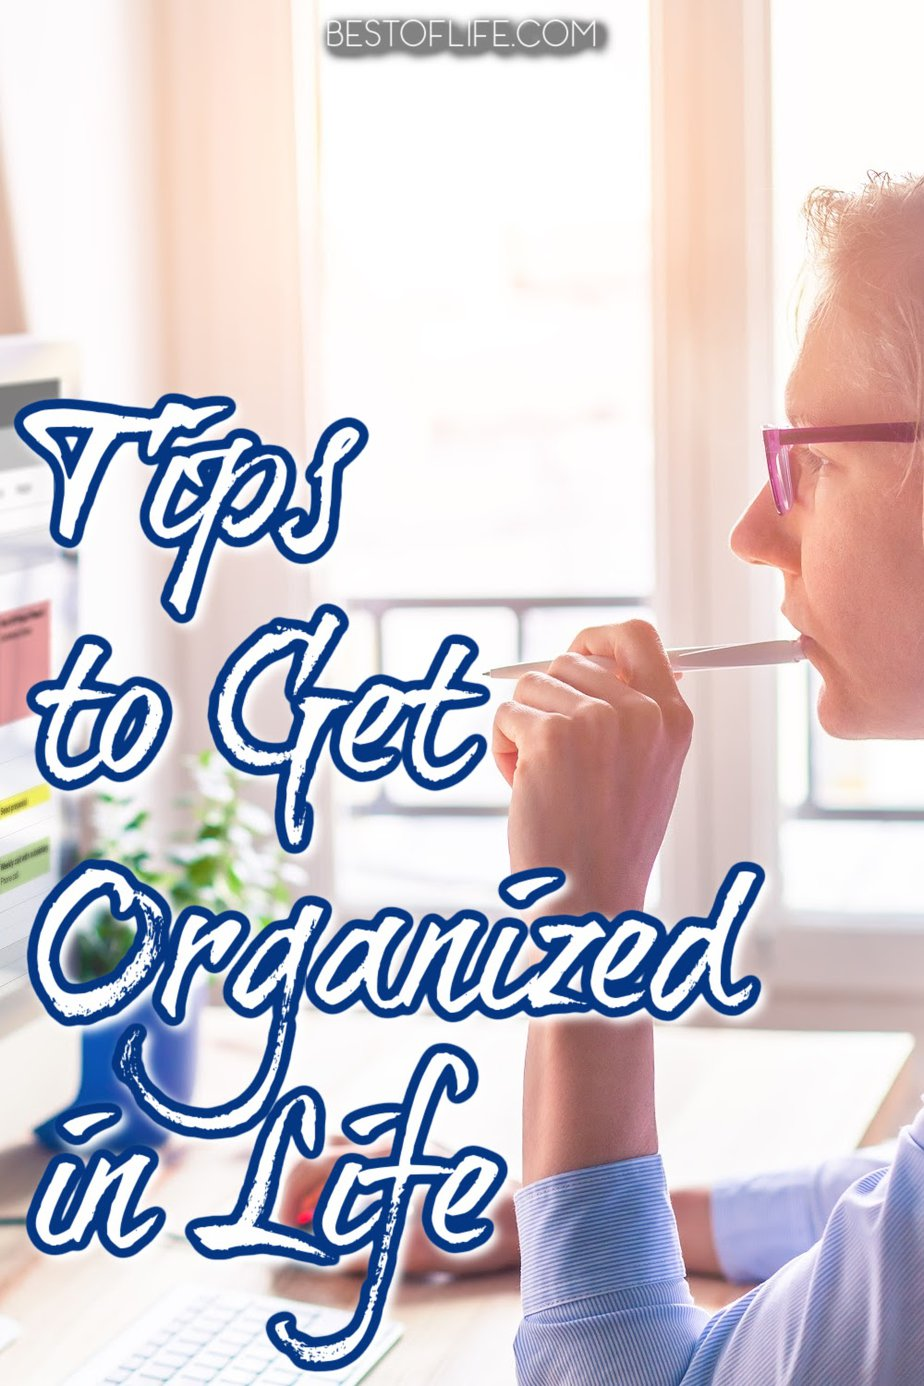 It's not always easy to stay on top of things. If you are busy one of the best ways to stay organized is to make list loving a priority! To-Do List Methods | How to Make a To-Do List | To-Do List Examples | Effective To-Do List Format | How to Get Organized | What is To-Do List | Life Organization Tips | Tips for Getting Organized #organize #lists